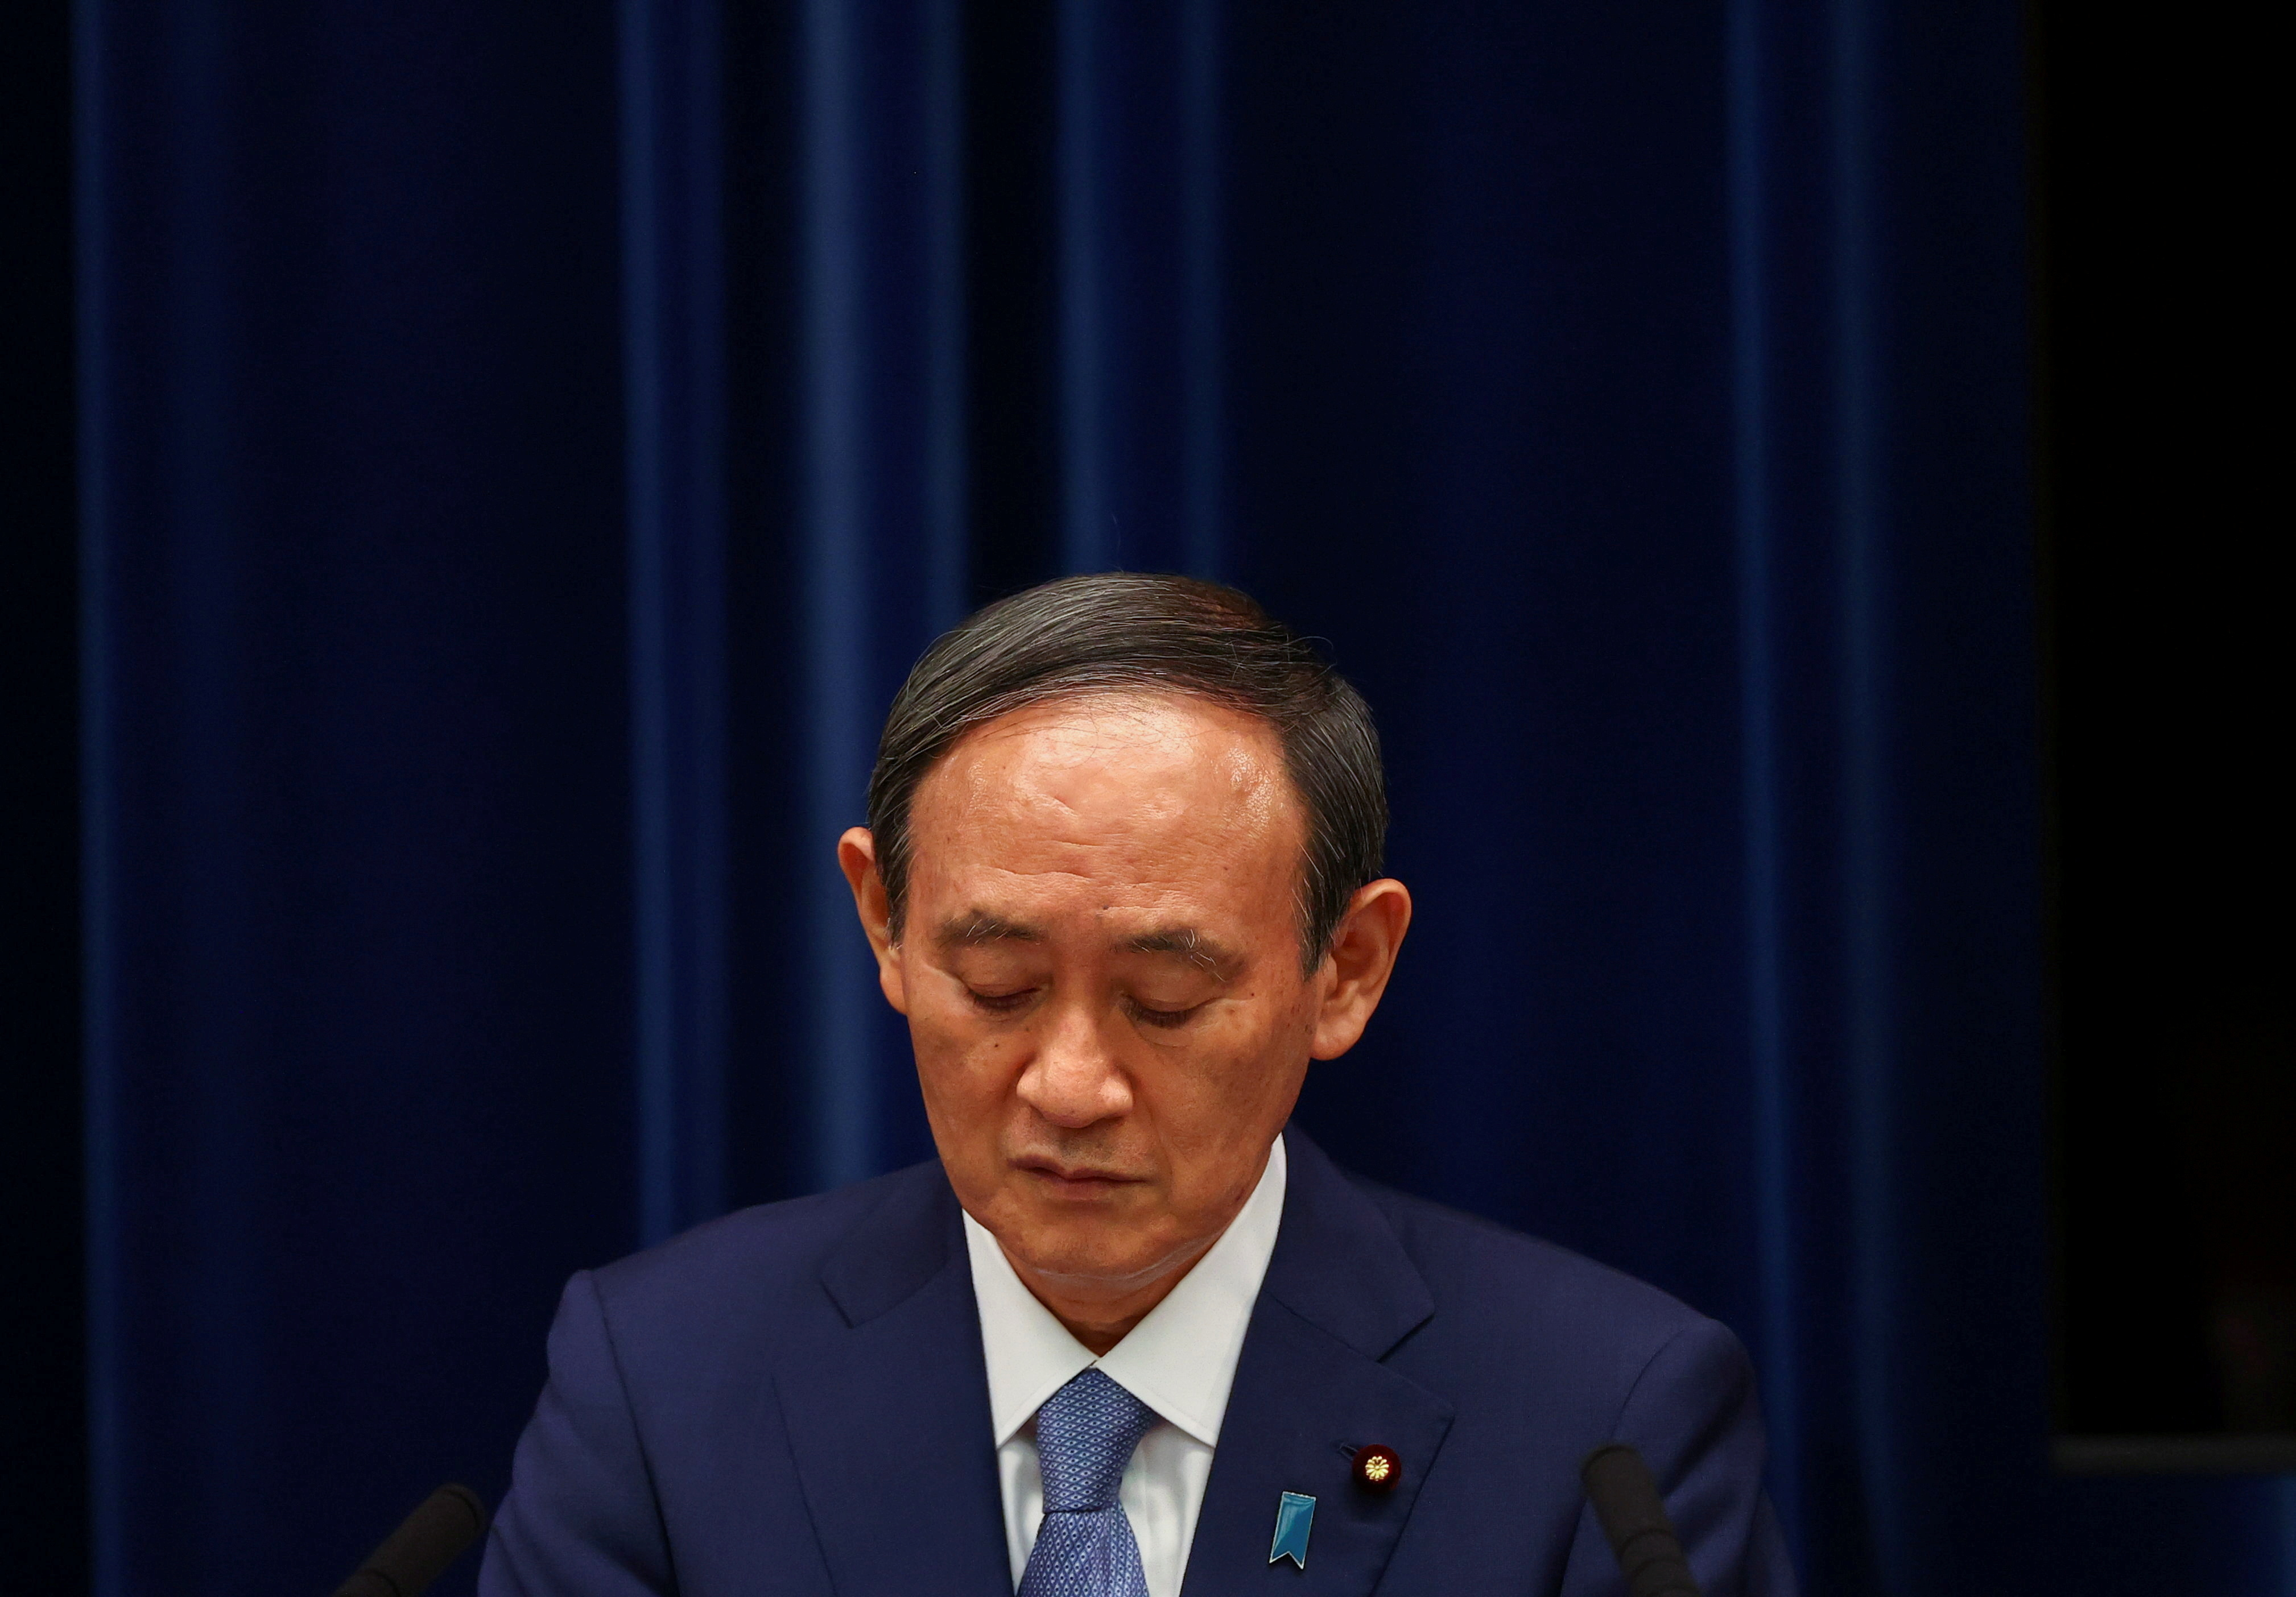 FILE PHOTO : Japan's Prime Minister Yoshihide Suga attends a news conference on Japan's response to the coronavirus disease (COVID-19) pandemic, at his official residence during the Tokyo 2020 Olympic Games in Tokyo, Japan, July 30, 2021. REUTERS/Issei Kato/Pool/File Photo